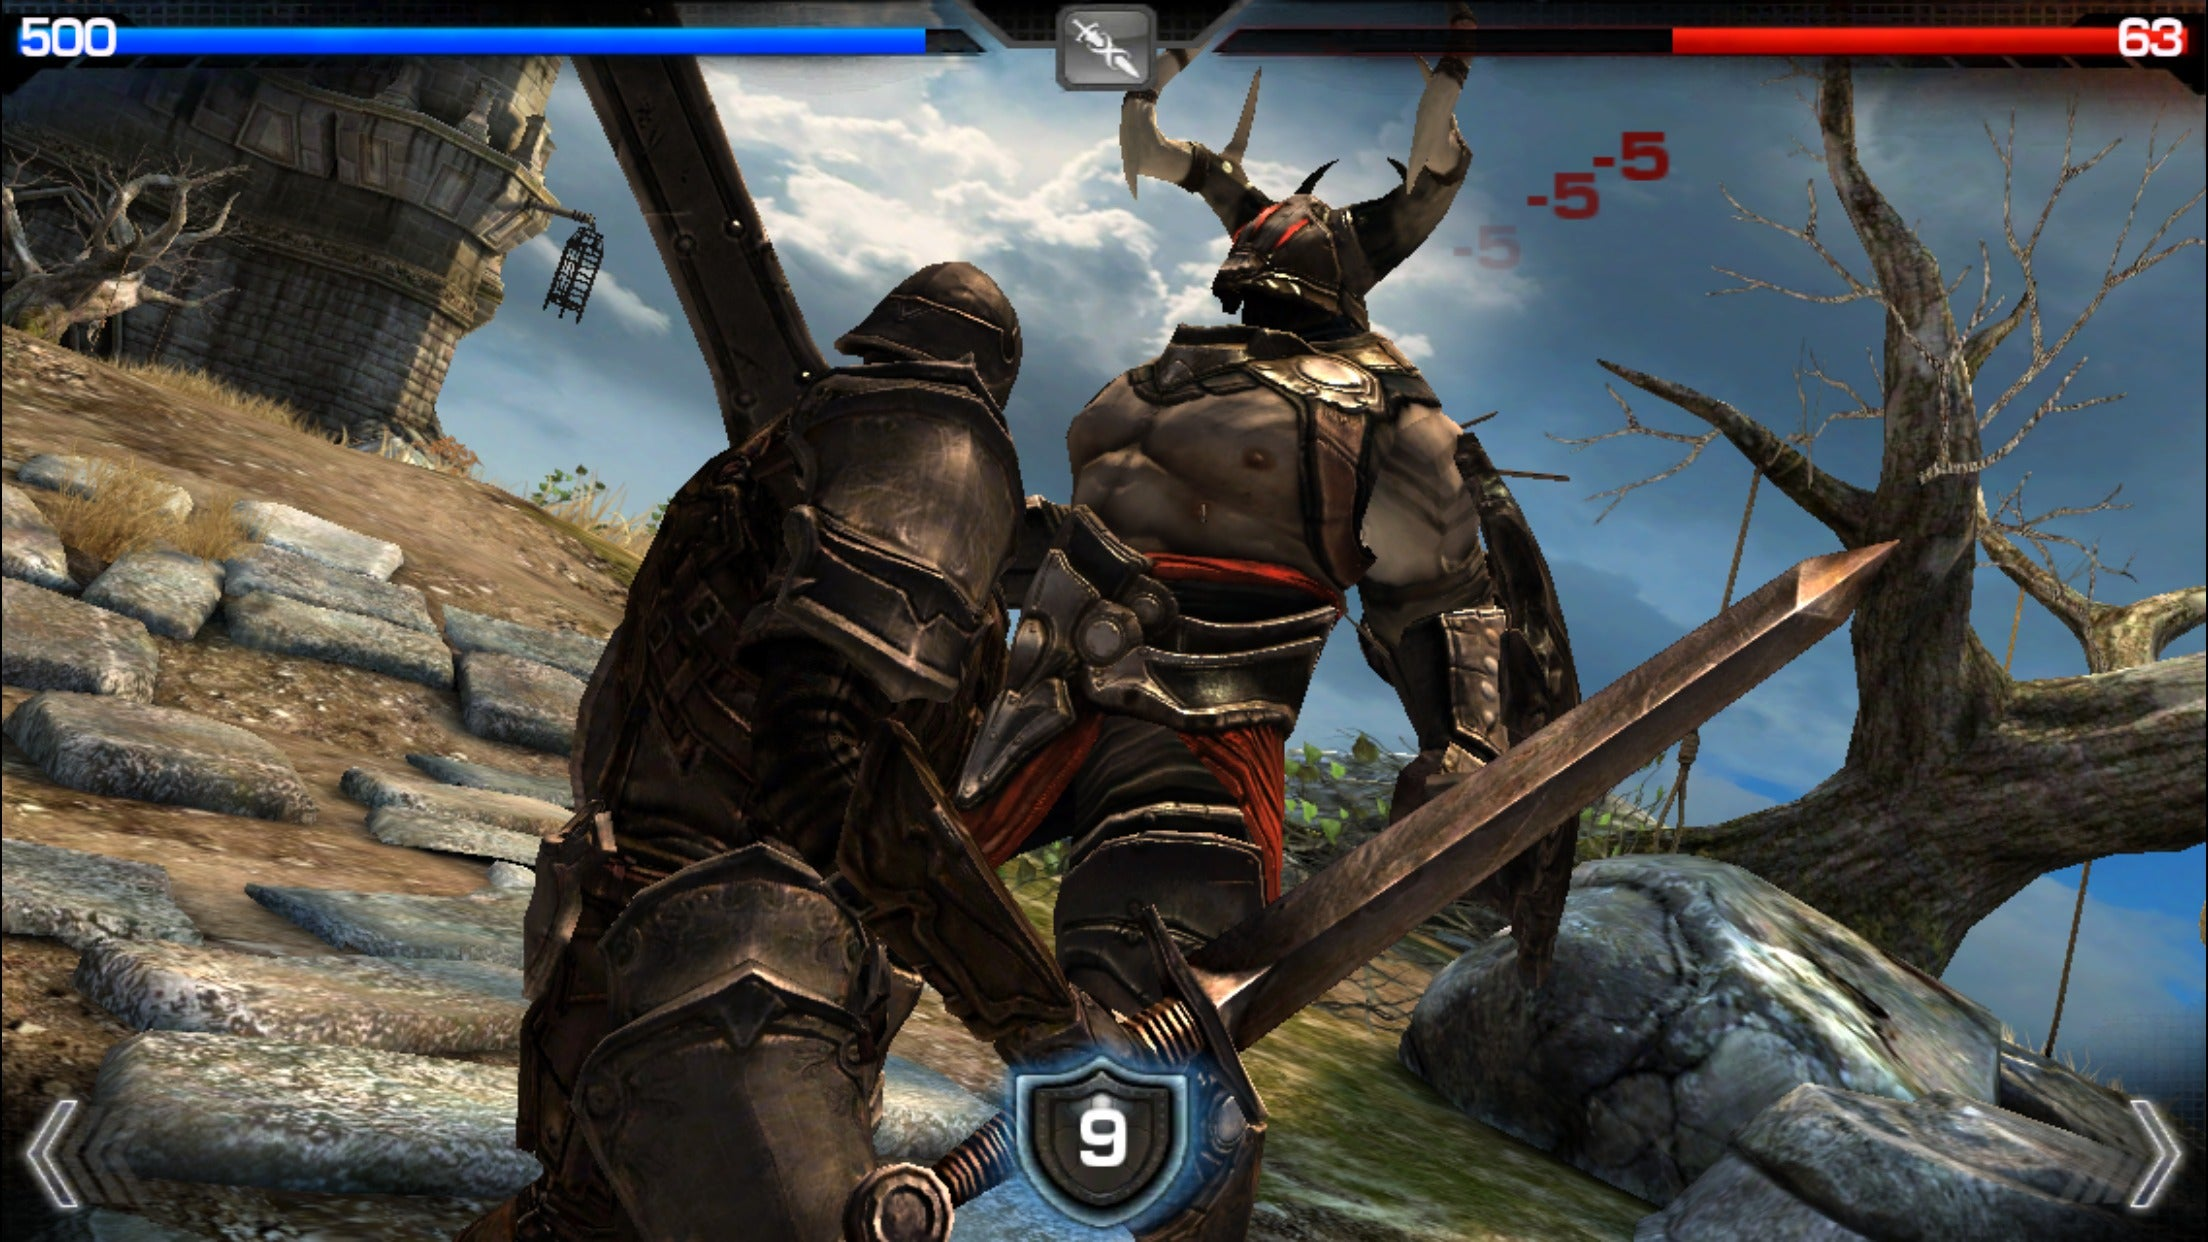 10 great, older games that you can still play on iOS 11 | Macworld